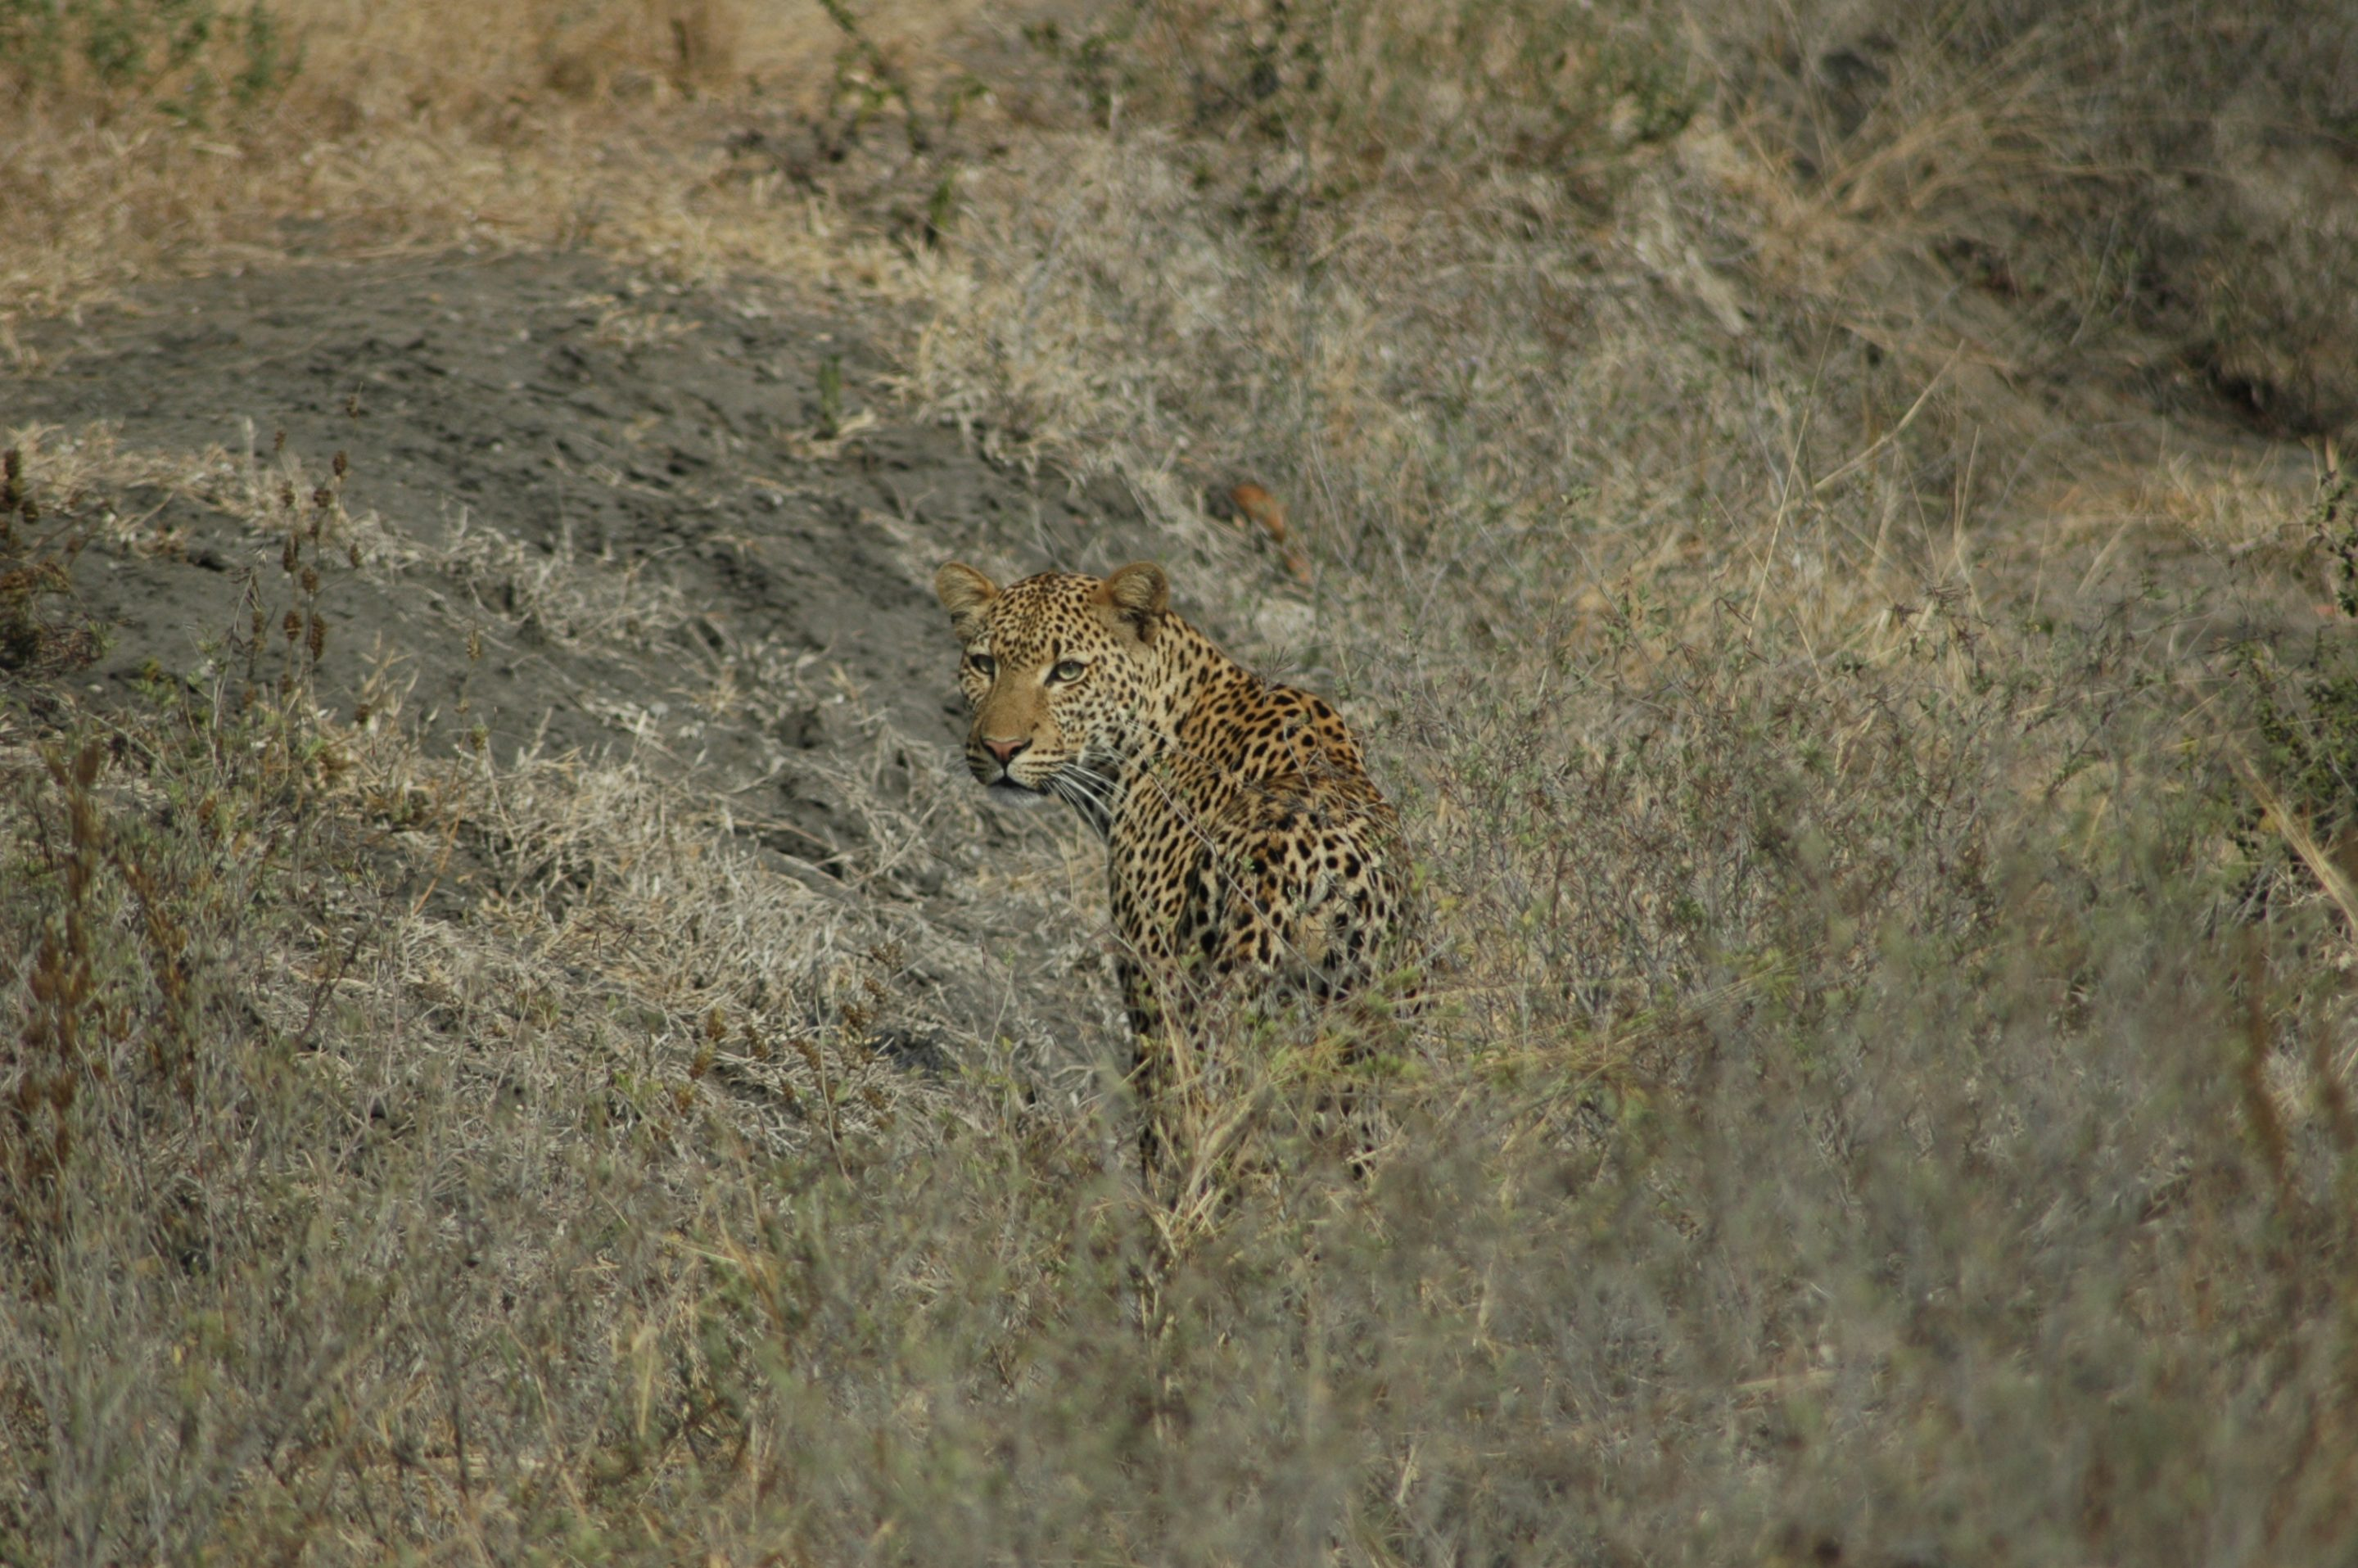 Selous leopard turning